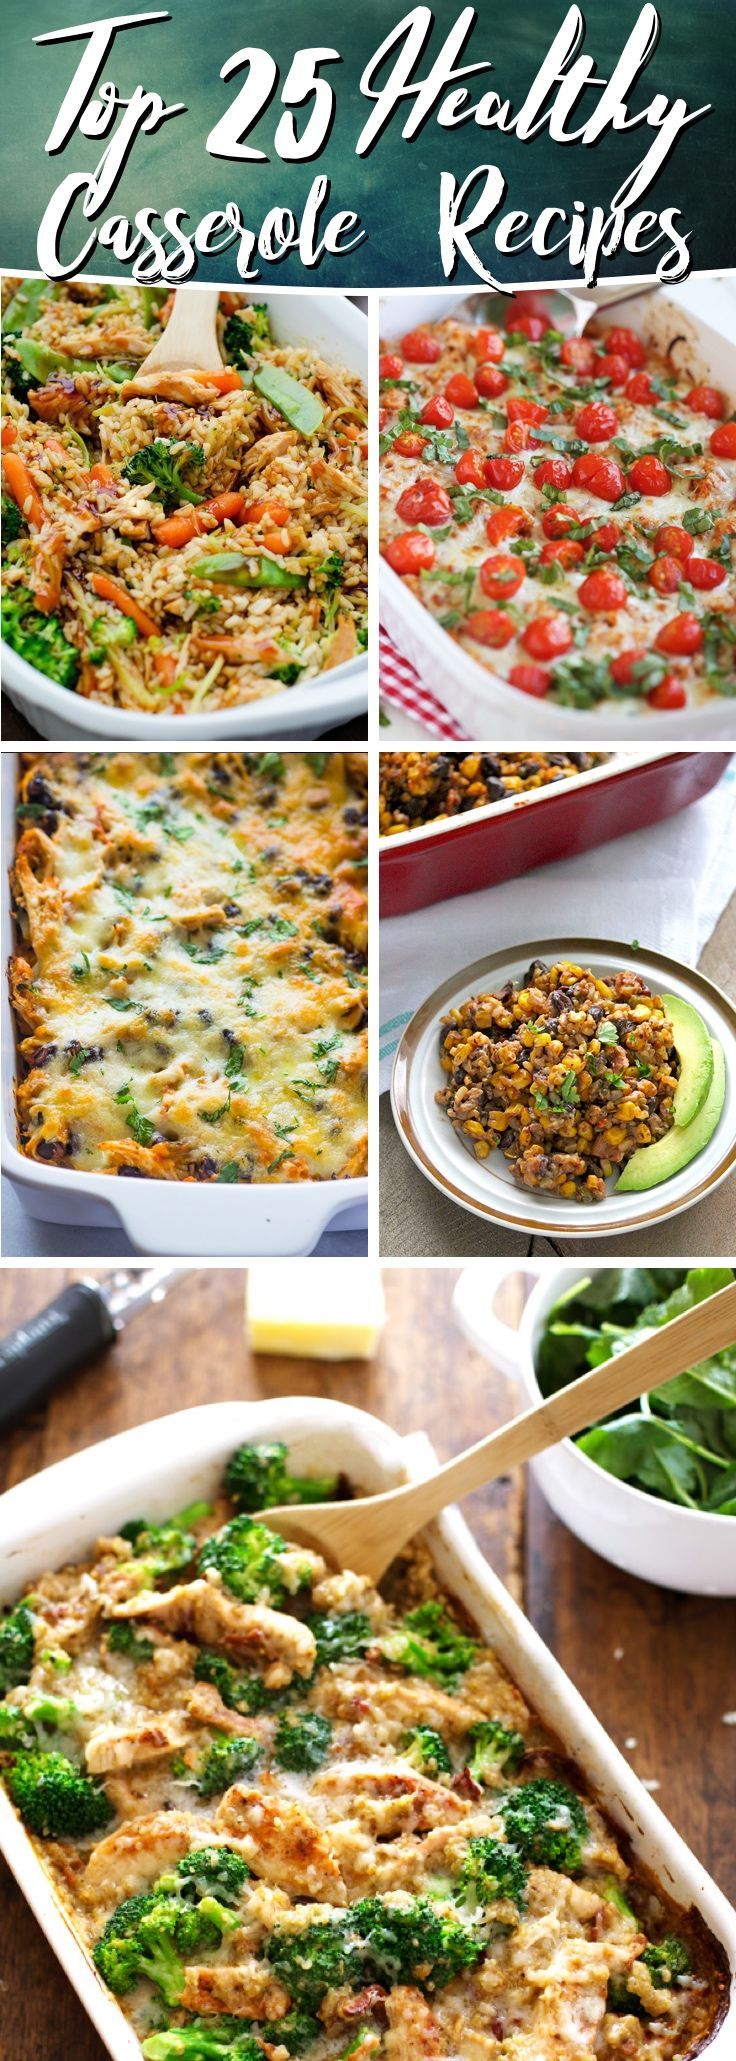 25 Healthy Casserole Recipes Packing Deliciousness With True Comfort #healthy #recipes #food #